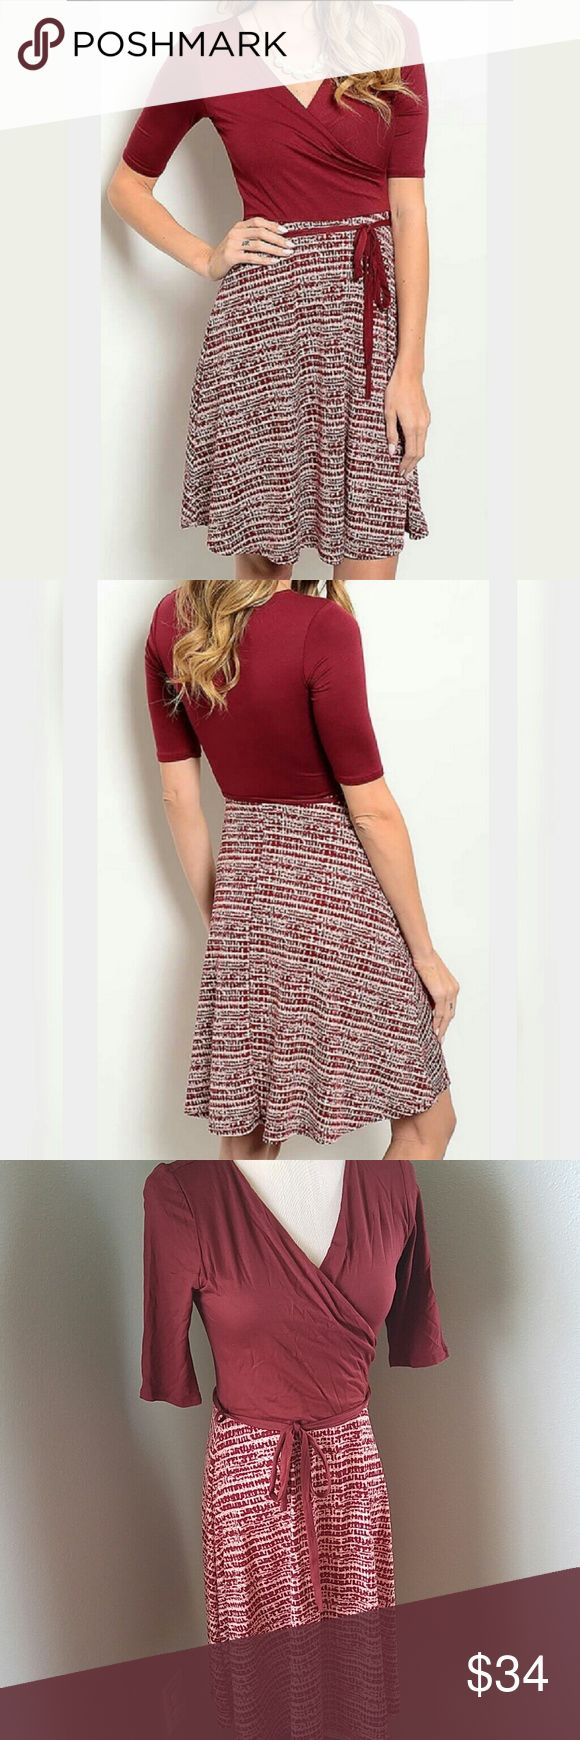 "Burgundy patterned wrap look dress Ultra flattering. Ties at waist. Viscose spandex top. Polyester spandex bottom. Dress is medium but fits like a small so I am marking it small. Half sleeves. 35"" length. Dresses"